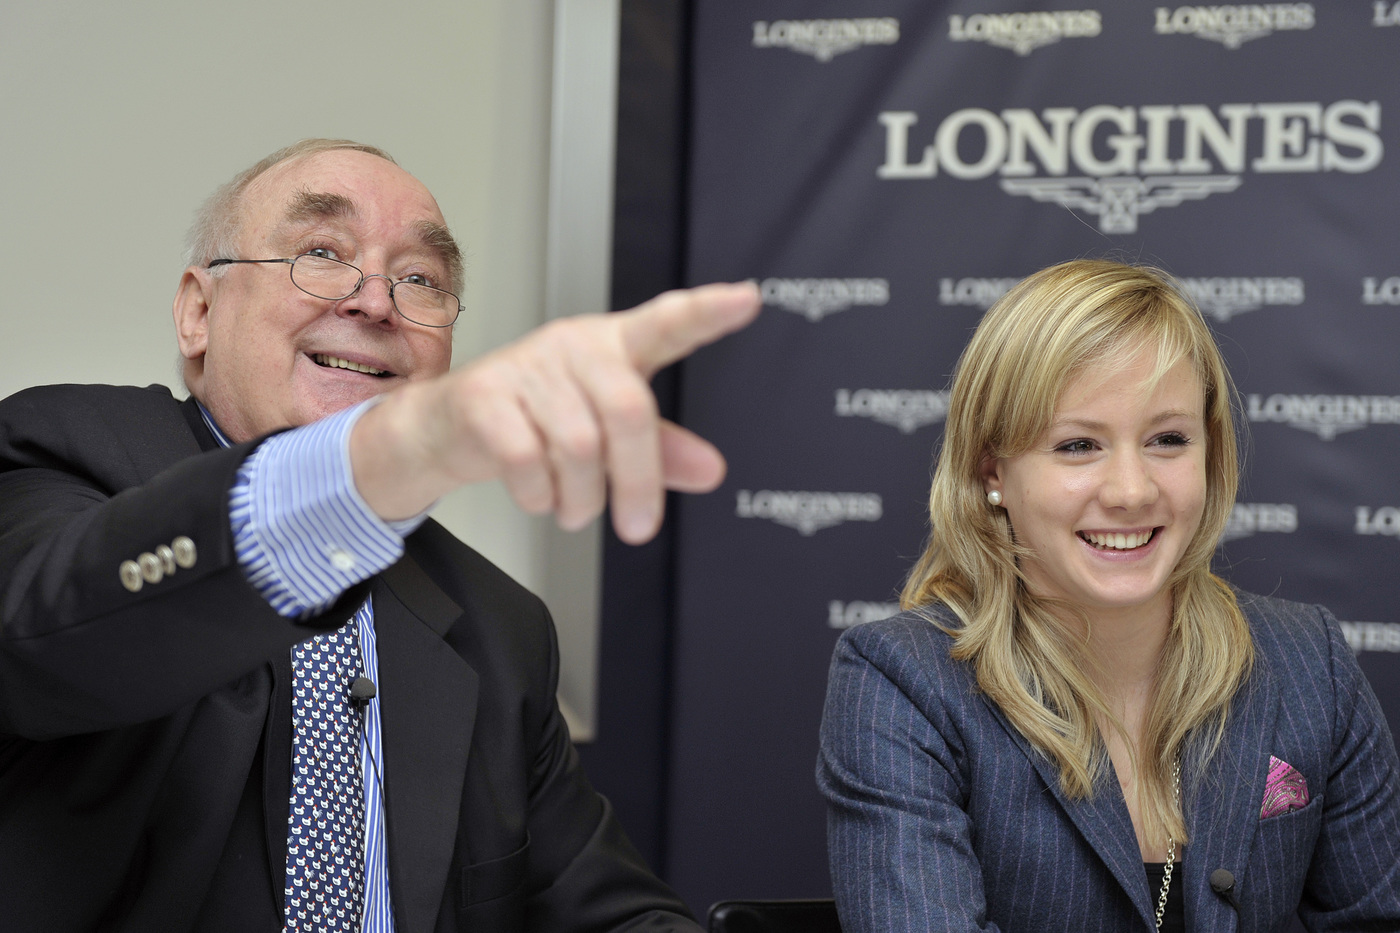 Longines Gymnastics Event: Ariella Kaeslin visits Longines headquarters 2